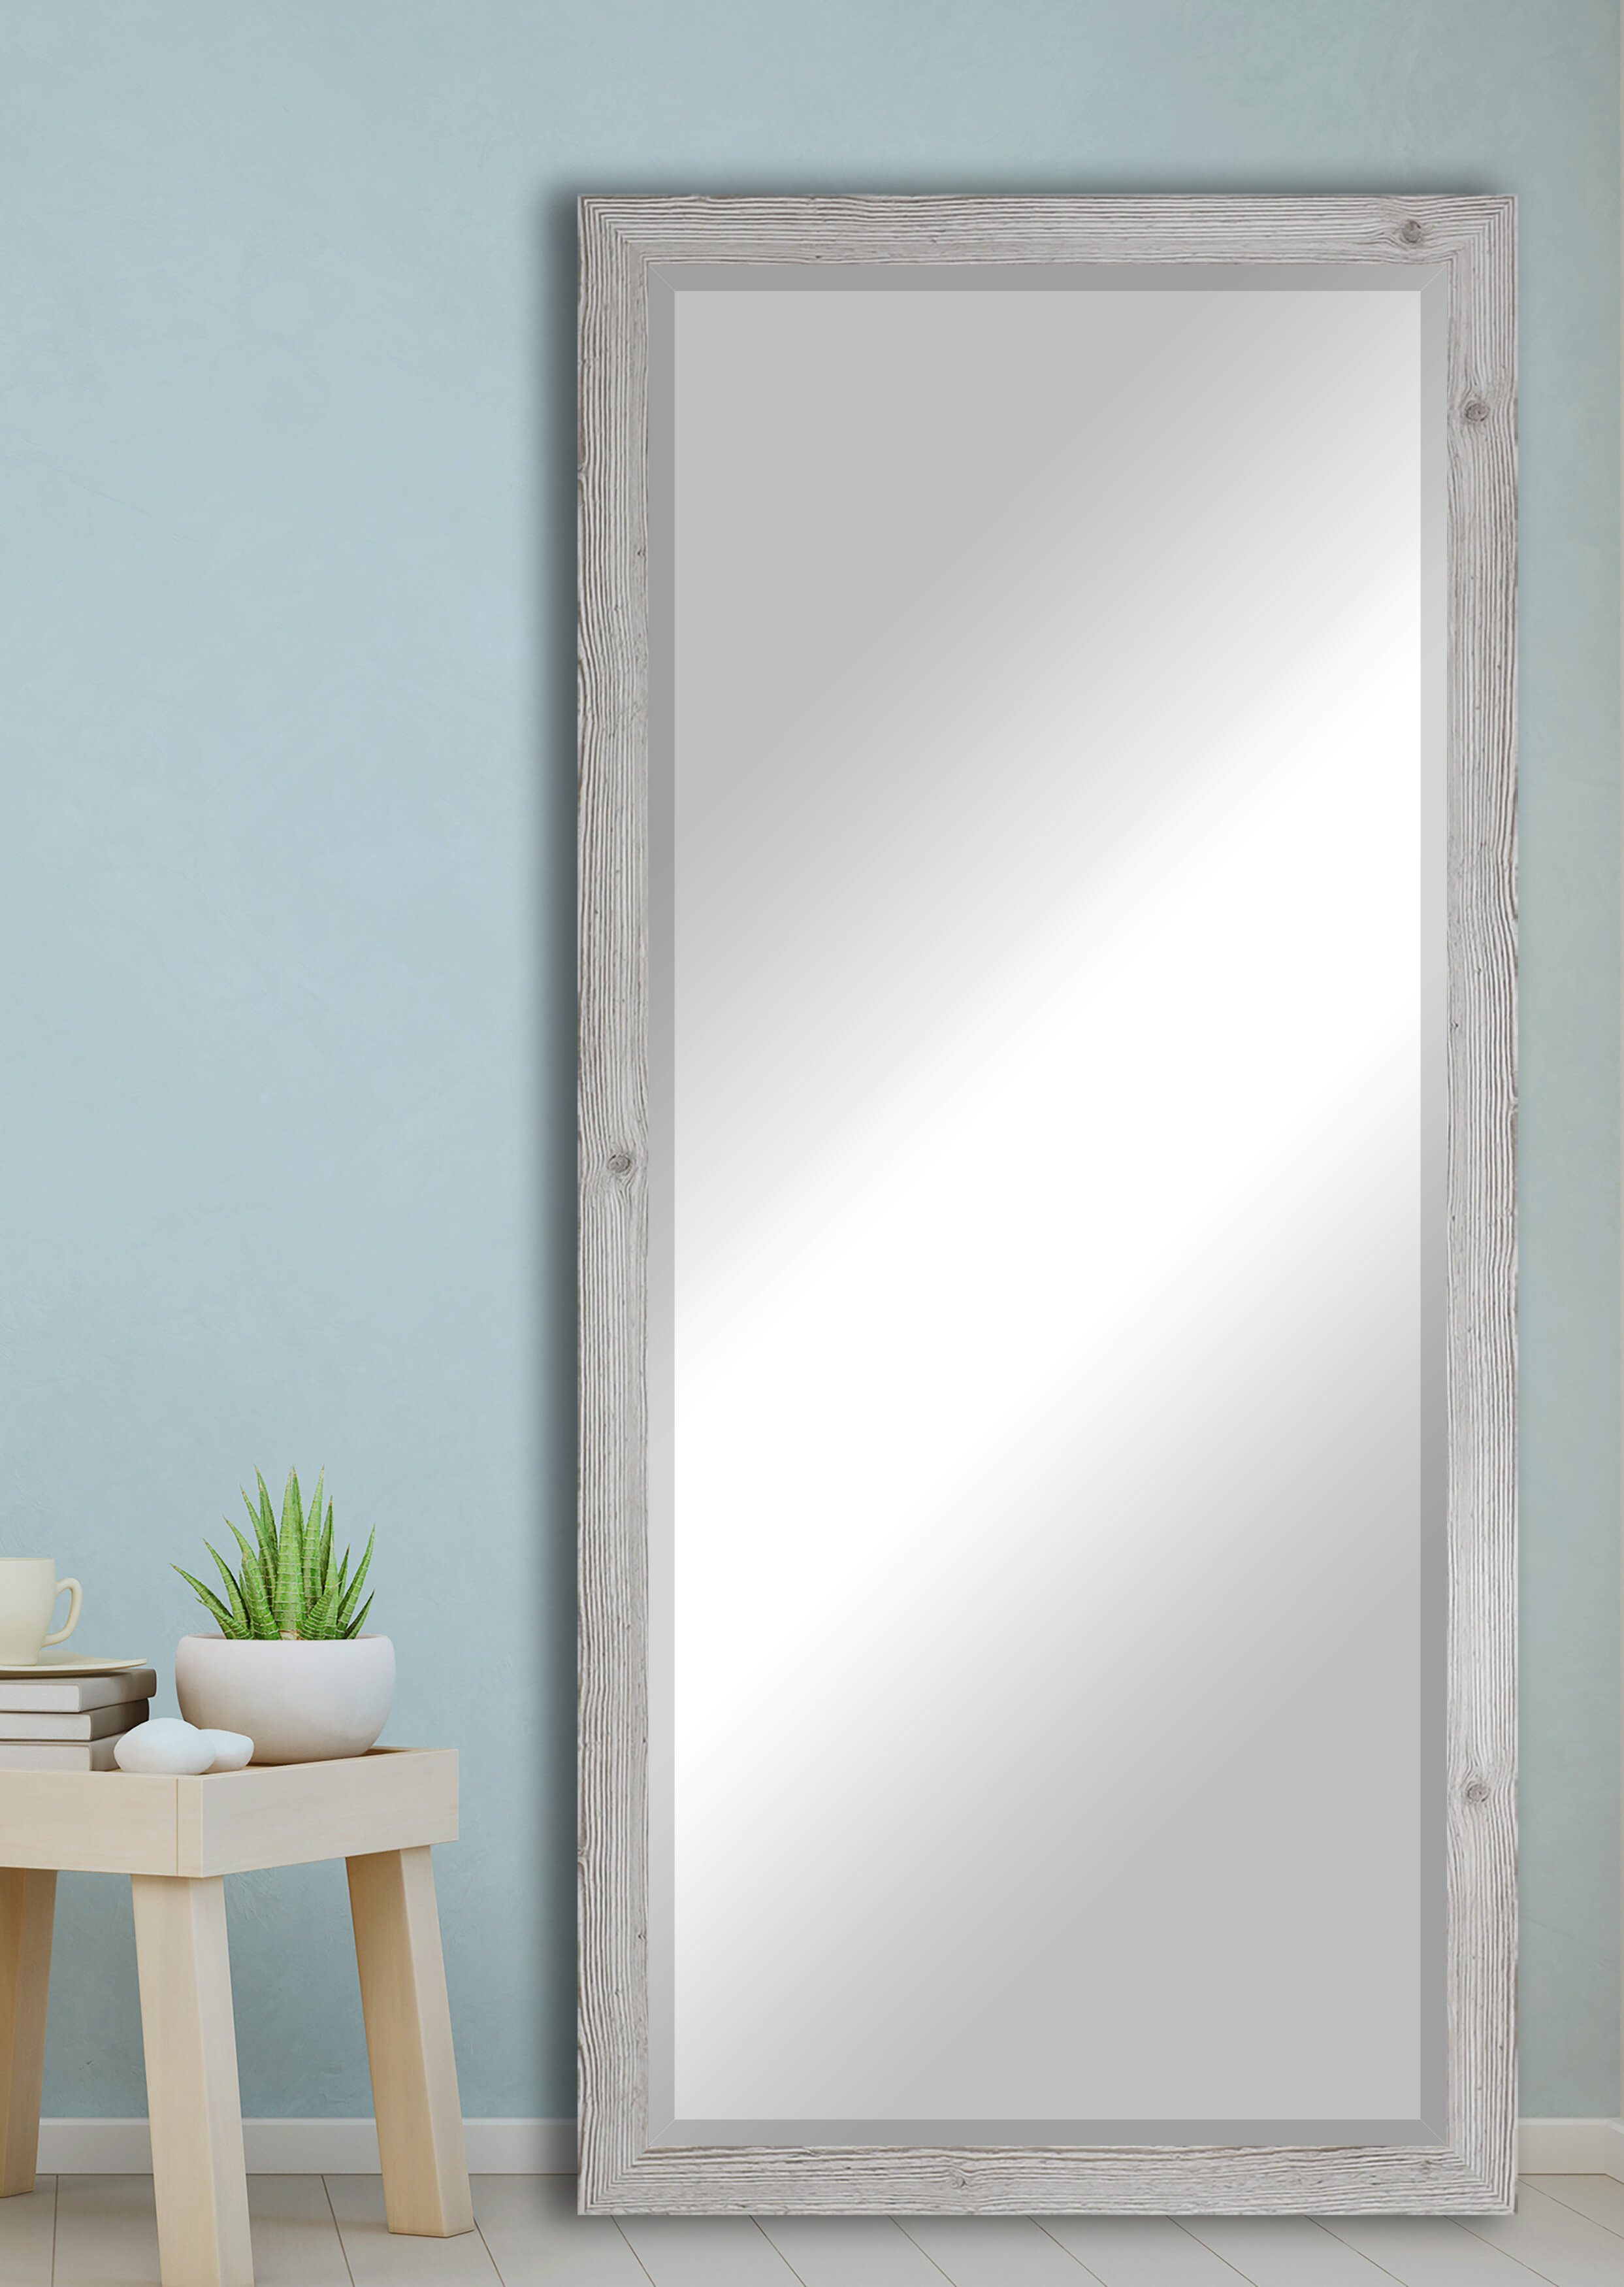 Rosborough Traditional Extra Tall Floor Accent Mirror With Regard To Traditional Accent Mirrors (View 9 of 20)